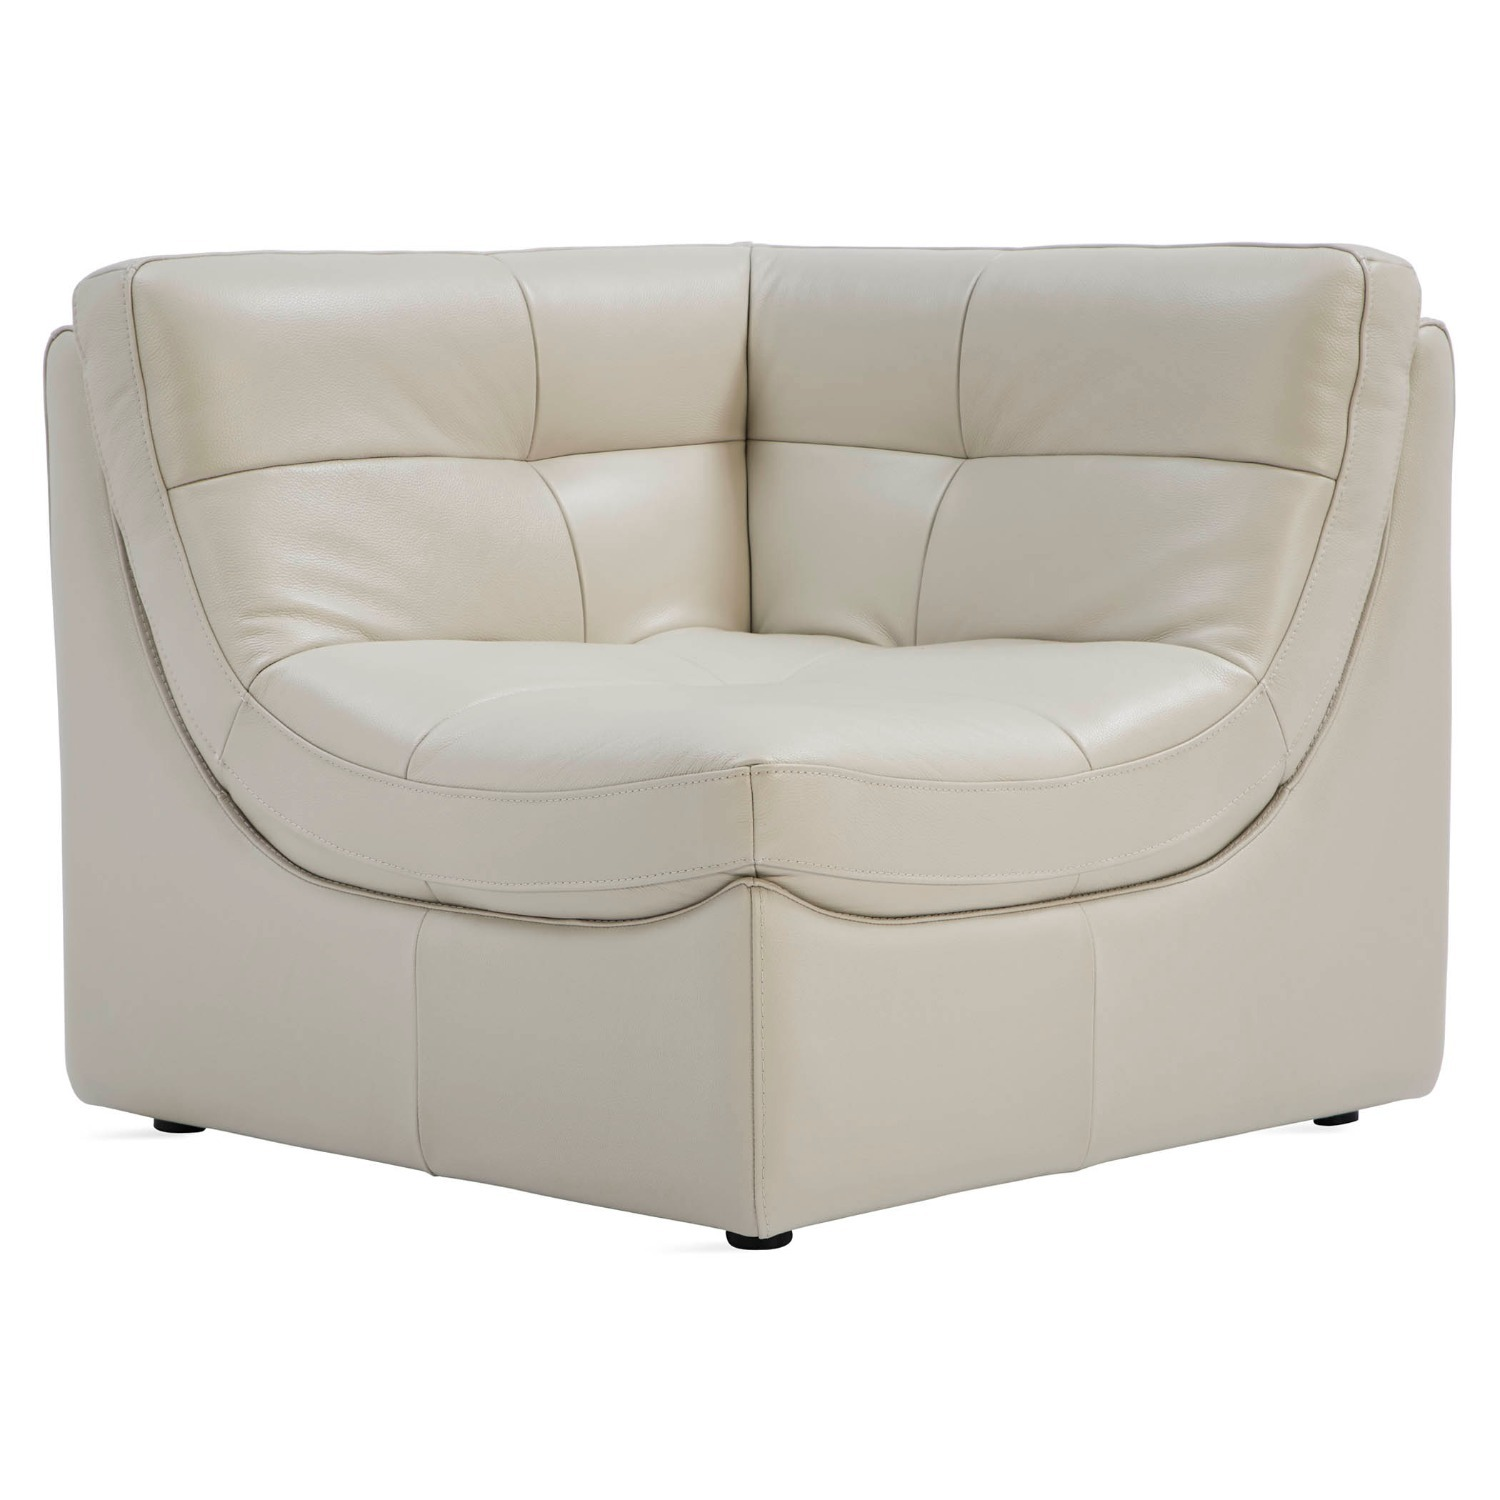 Zgallerie White Leather Sectional Sofa - image-3